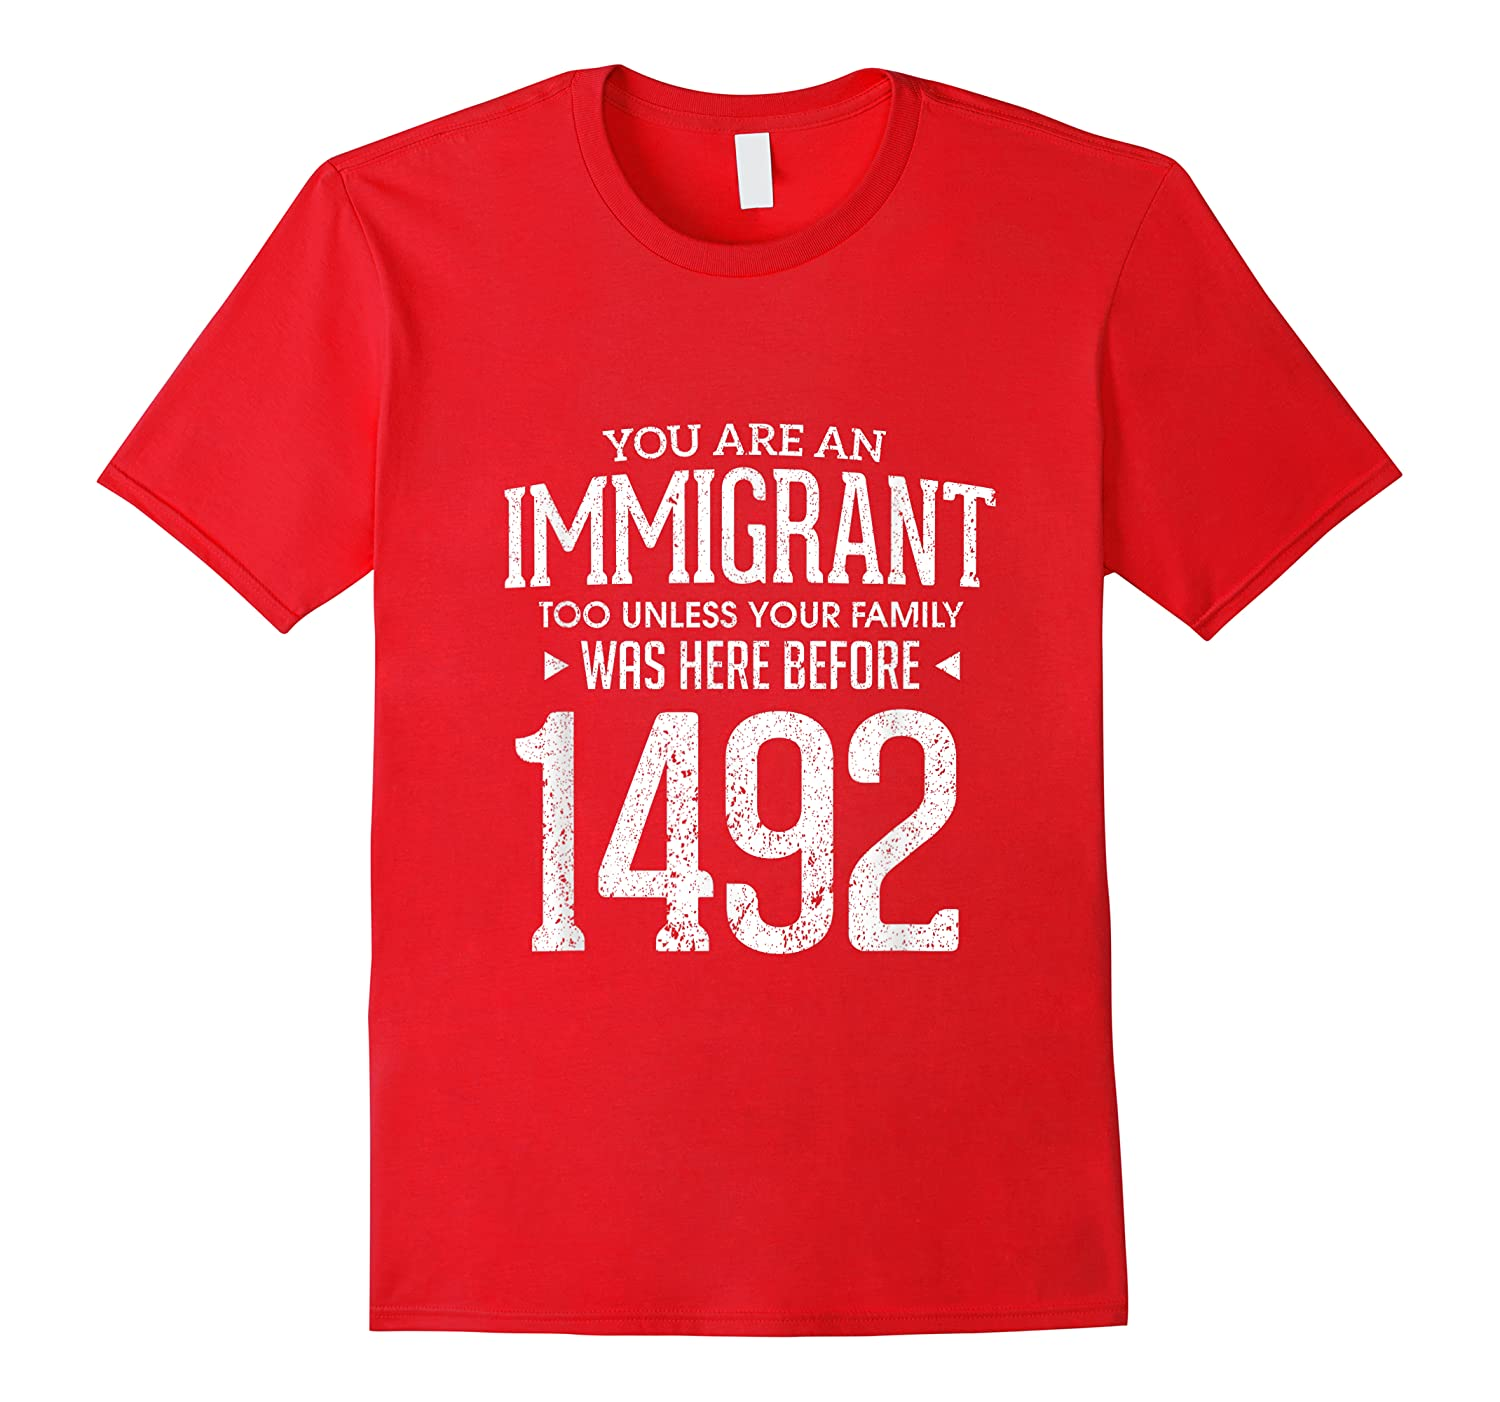 1492 Columbus Day Funny Immigrant Too T-shirt